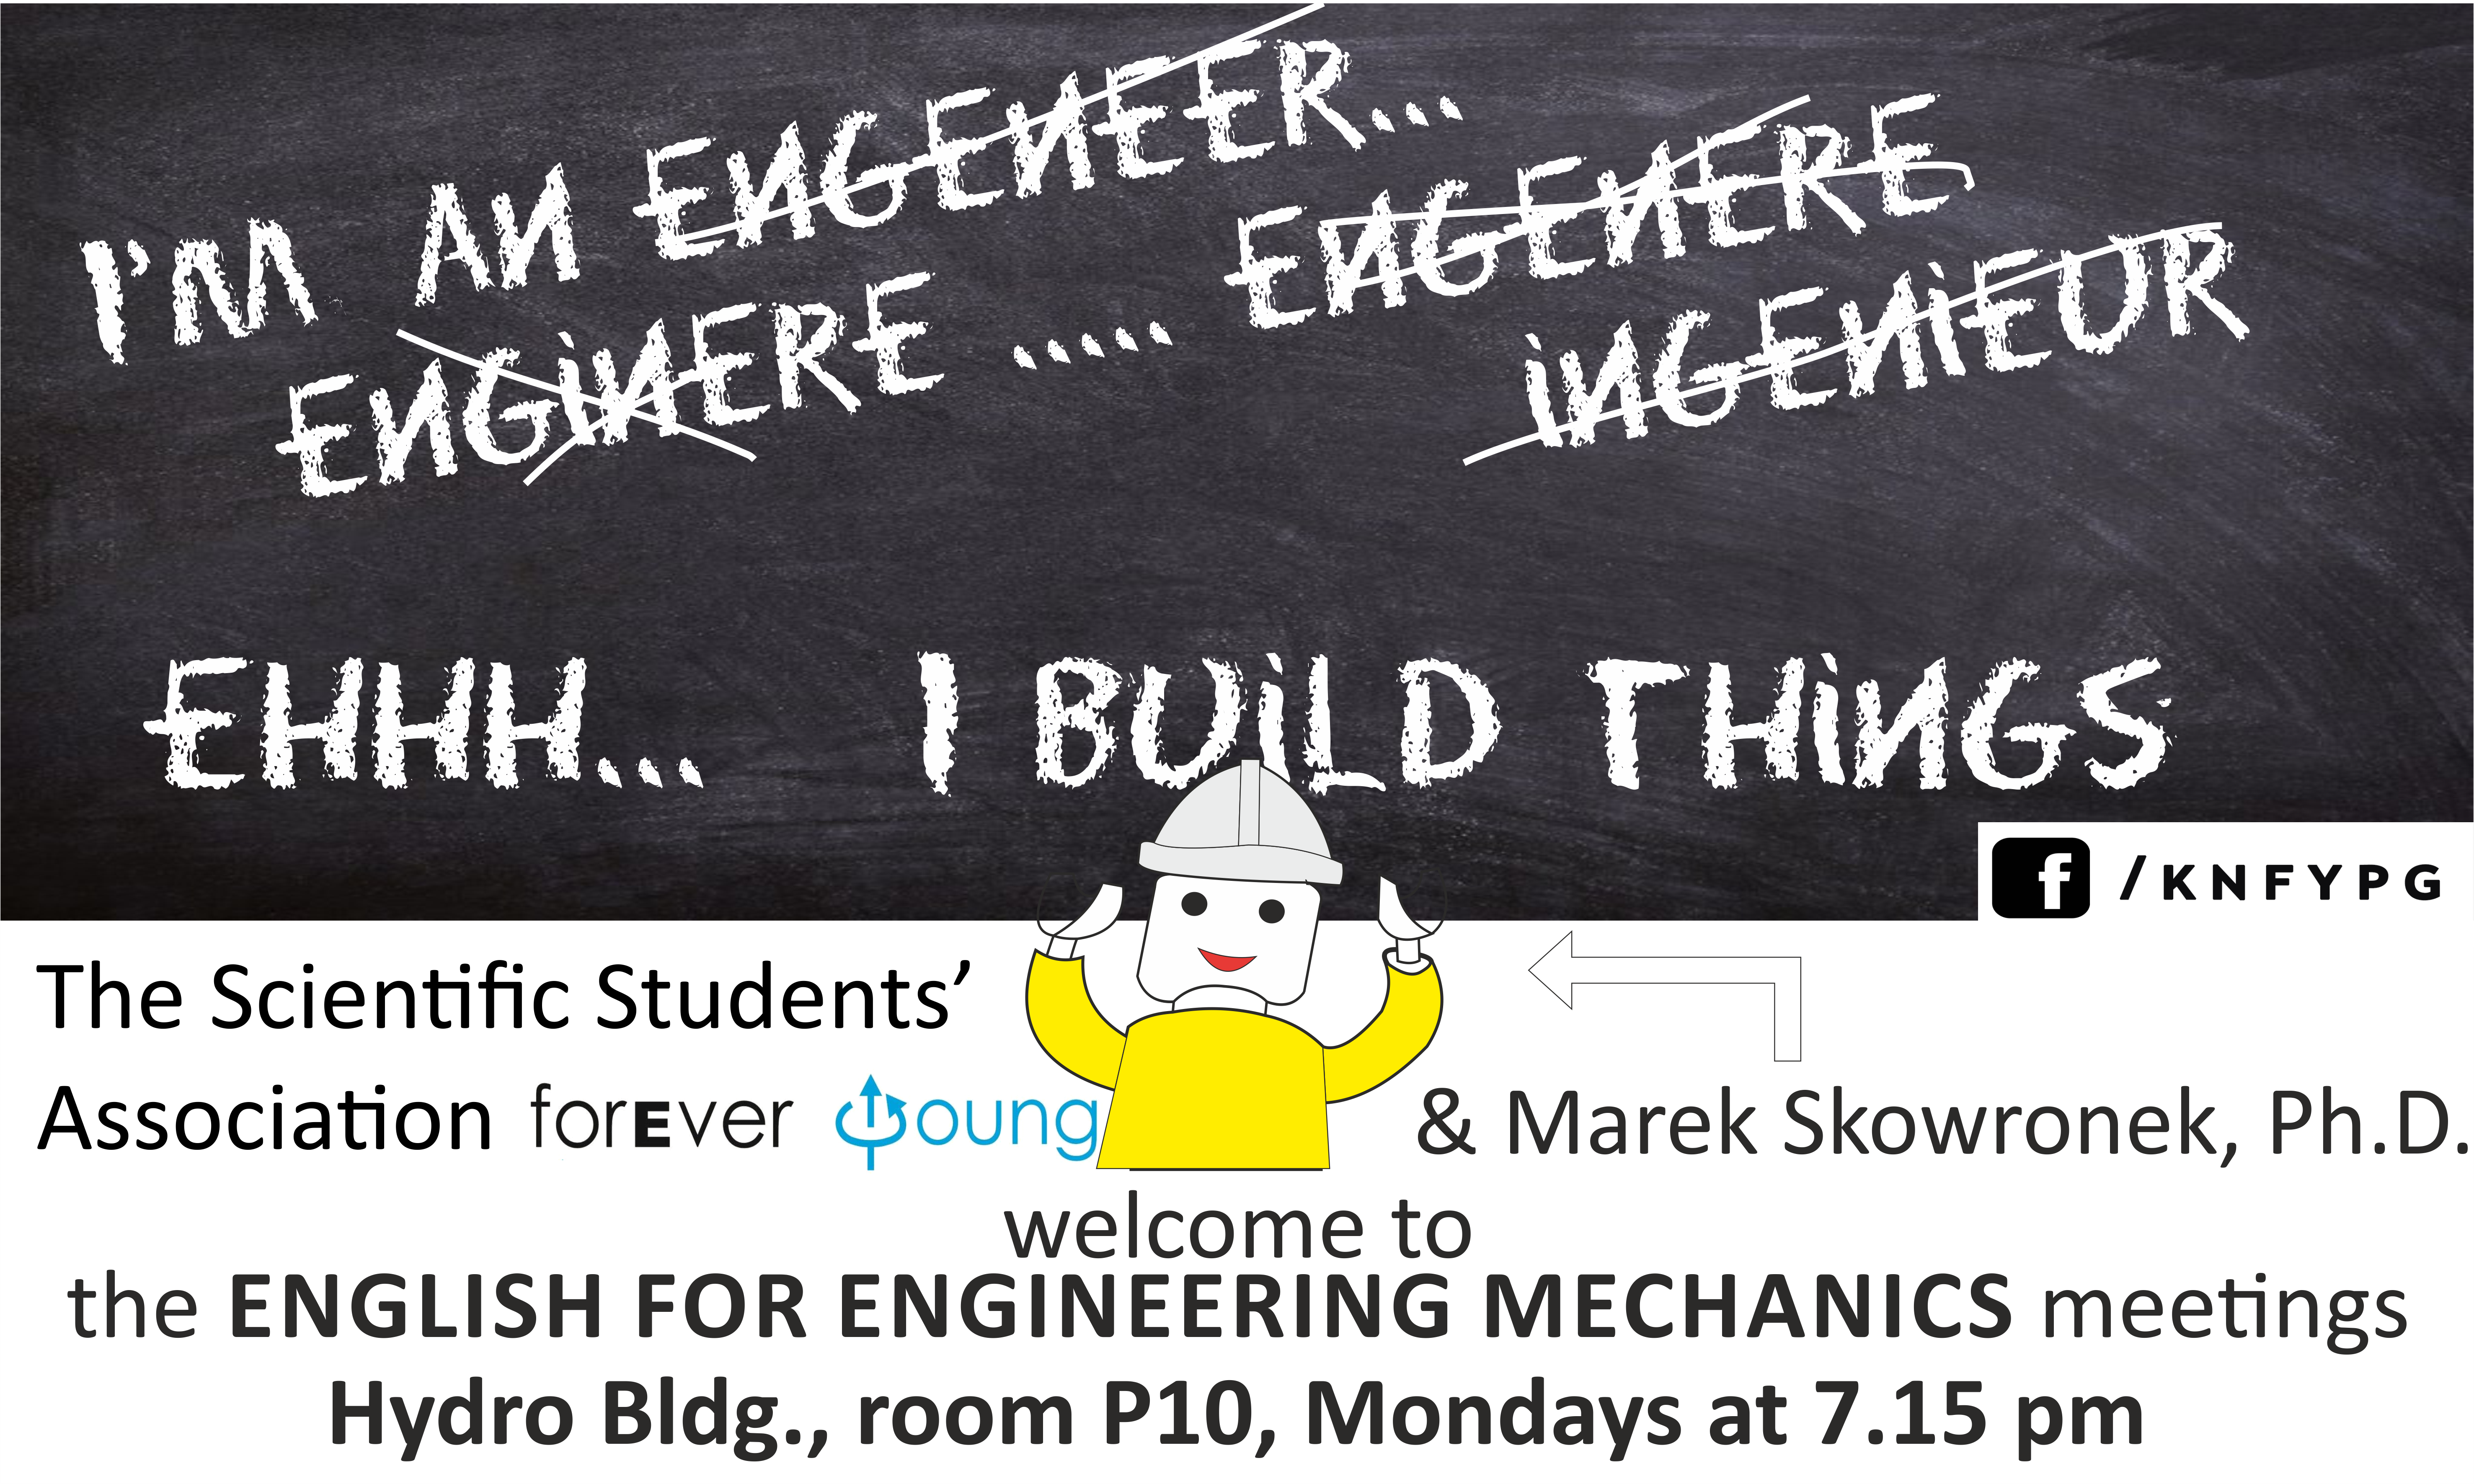 ENGLISH FOR ENGINEERING MECHANICS